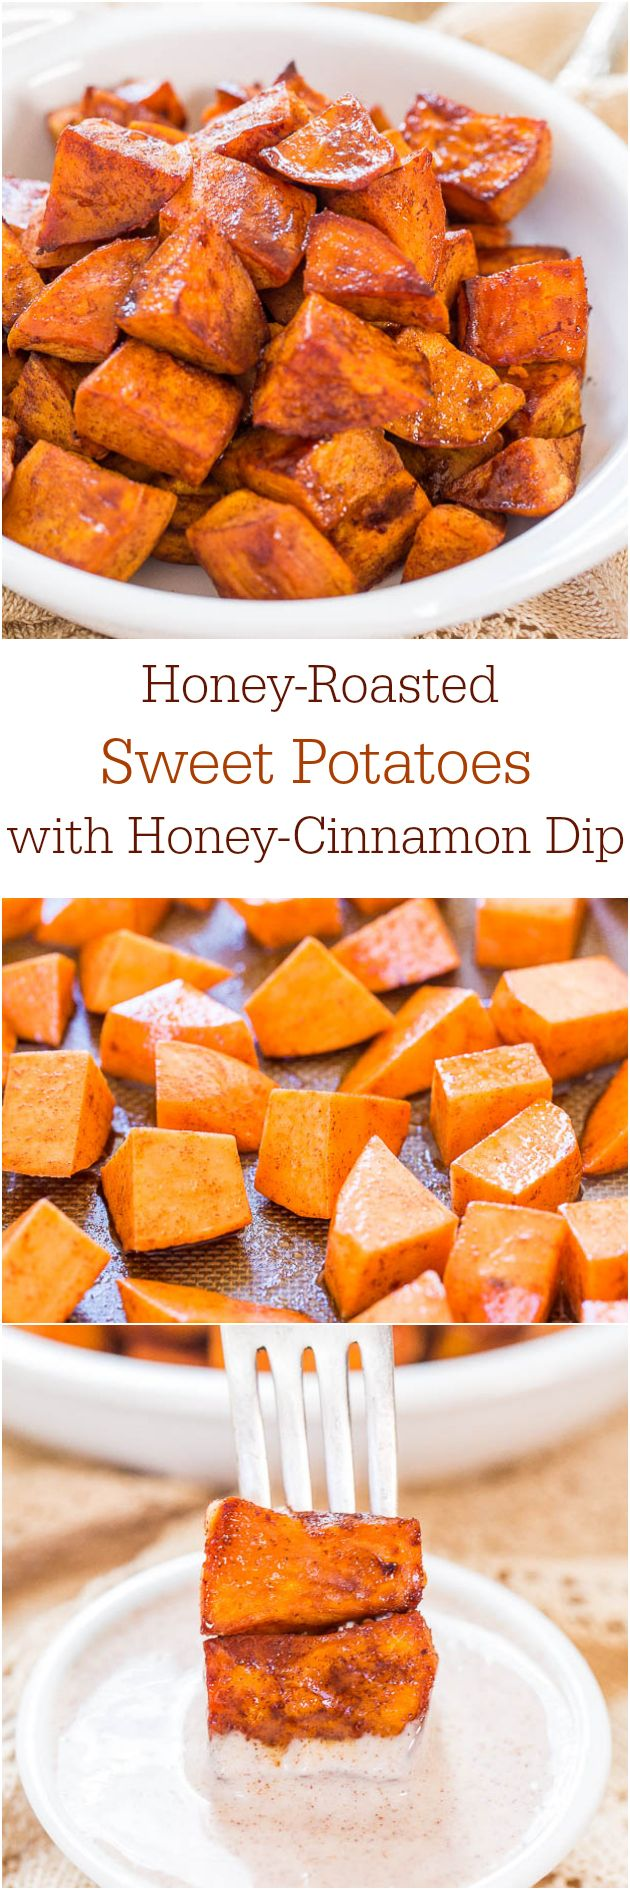 Honey-Roasted Sweet Potatoes with Honey-Cinnamon Dip by averiecooks #Sweet_Potatoes #Honey #Cinammon